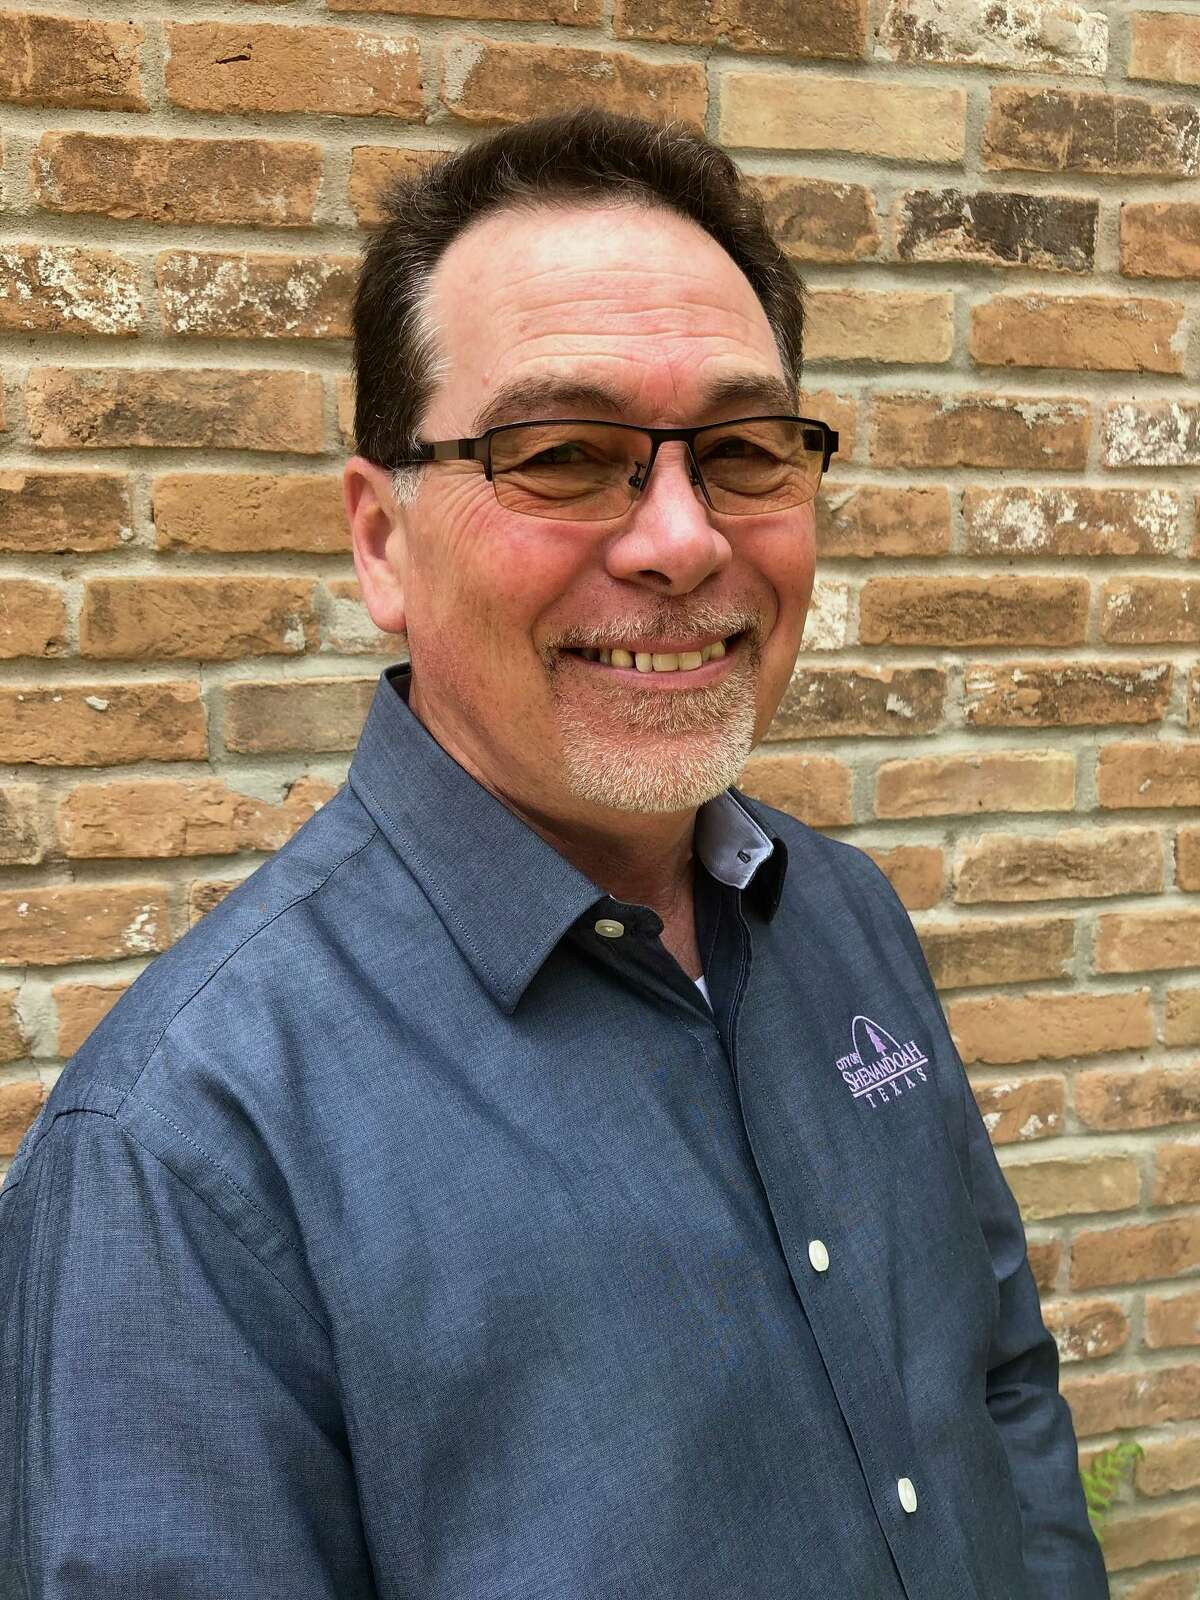 Dean Gristy did not seek re-election to the Position 3 seat on the Shenandoah City Council. His seat will be filled by May 1 election winner John Escoto, who will be sworn in on Wednesday, May 26.